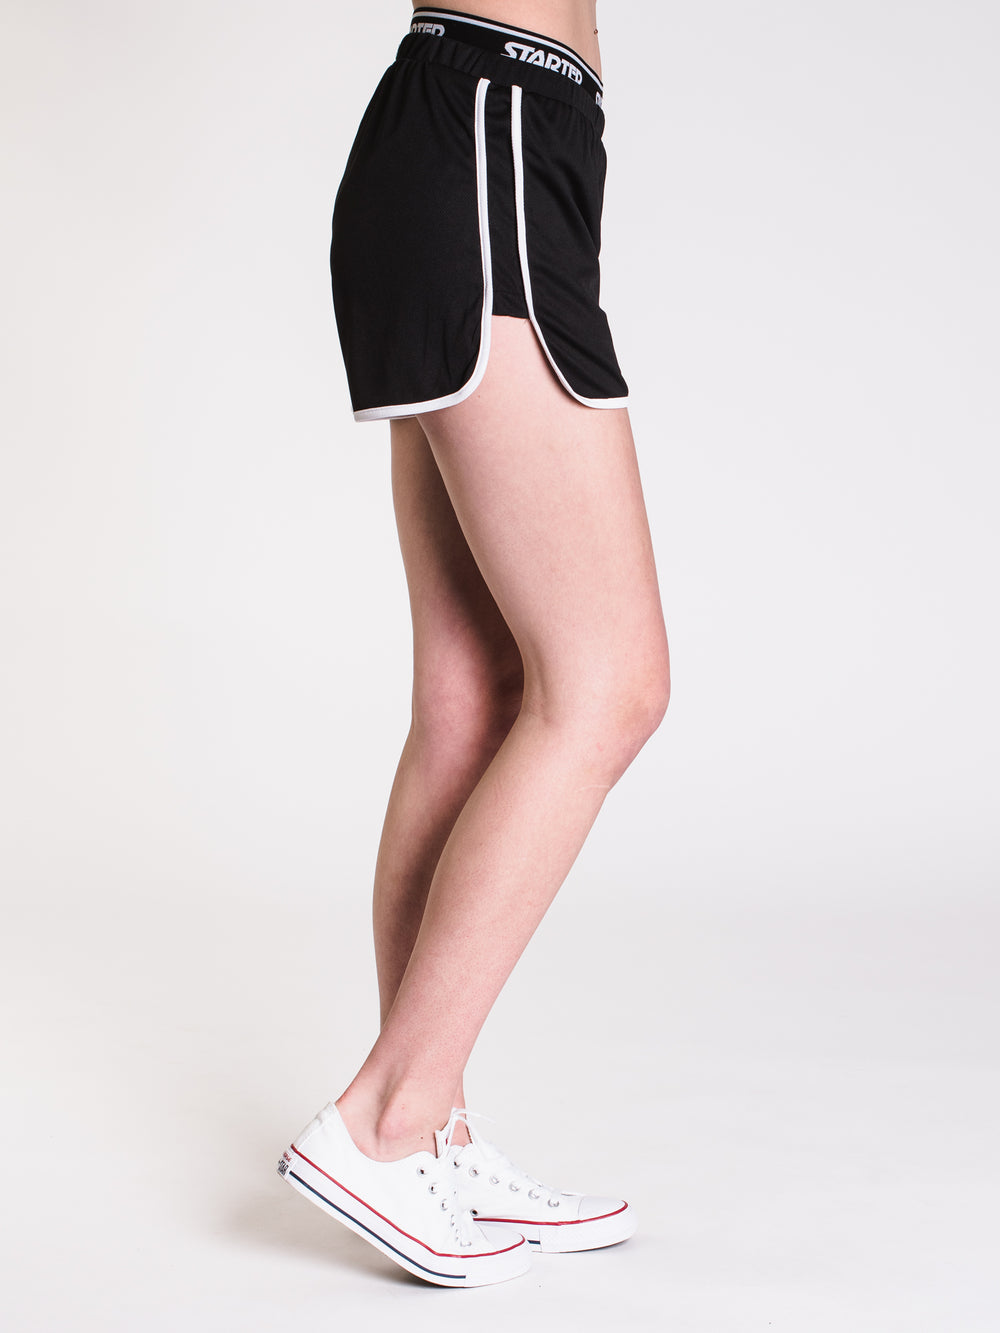 WOMENS GYM SHORT - BLACK - CLEARANCE